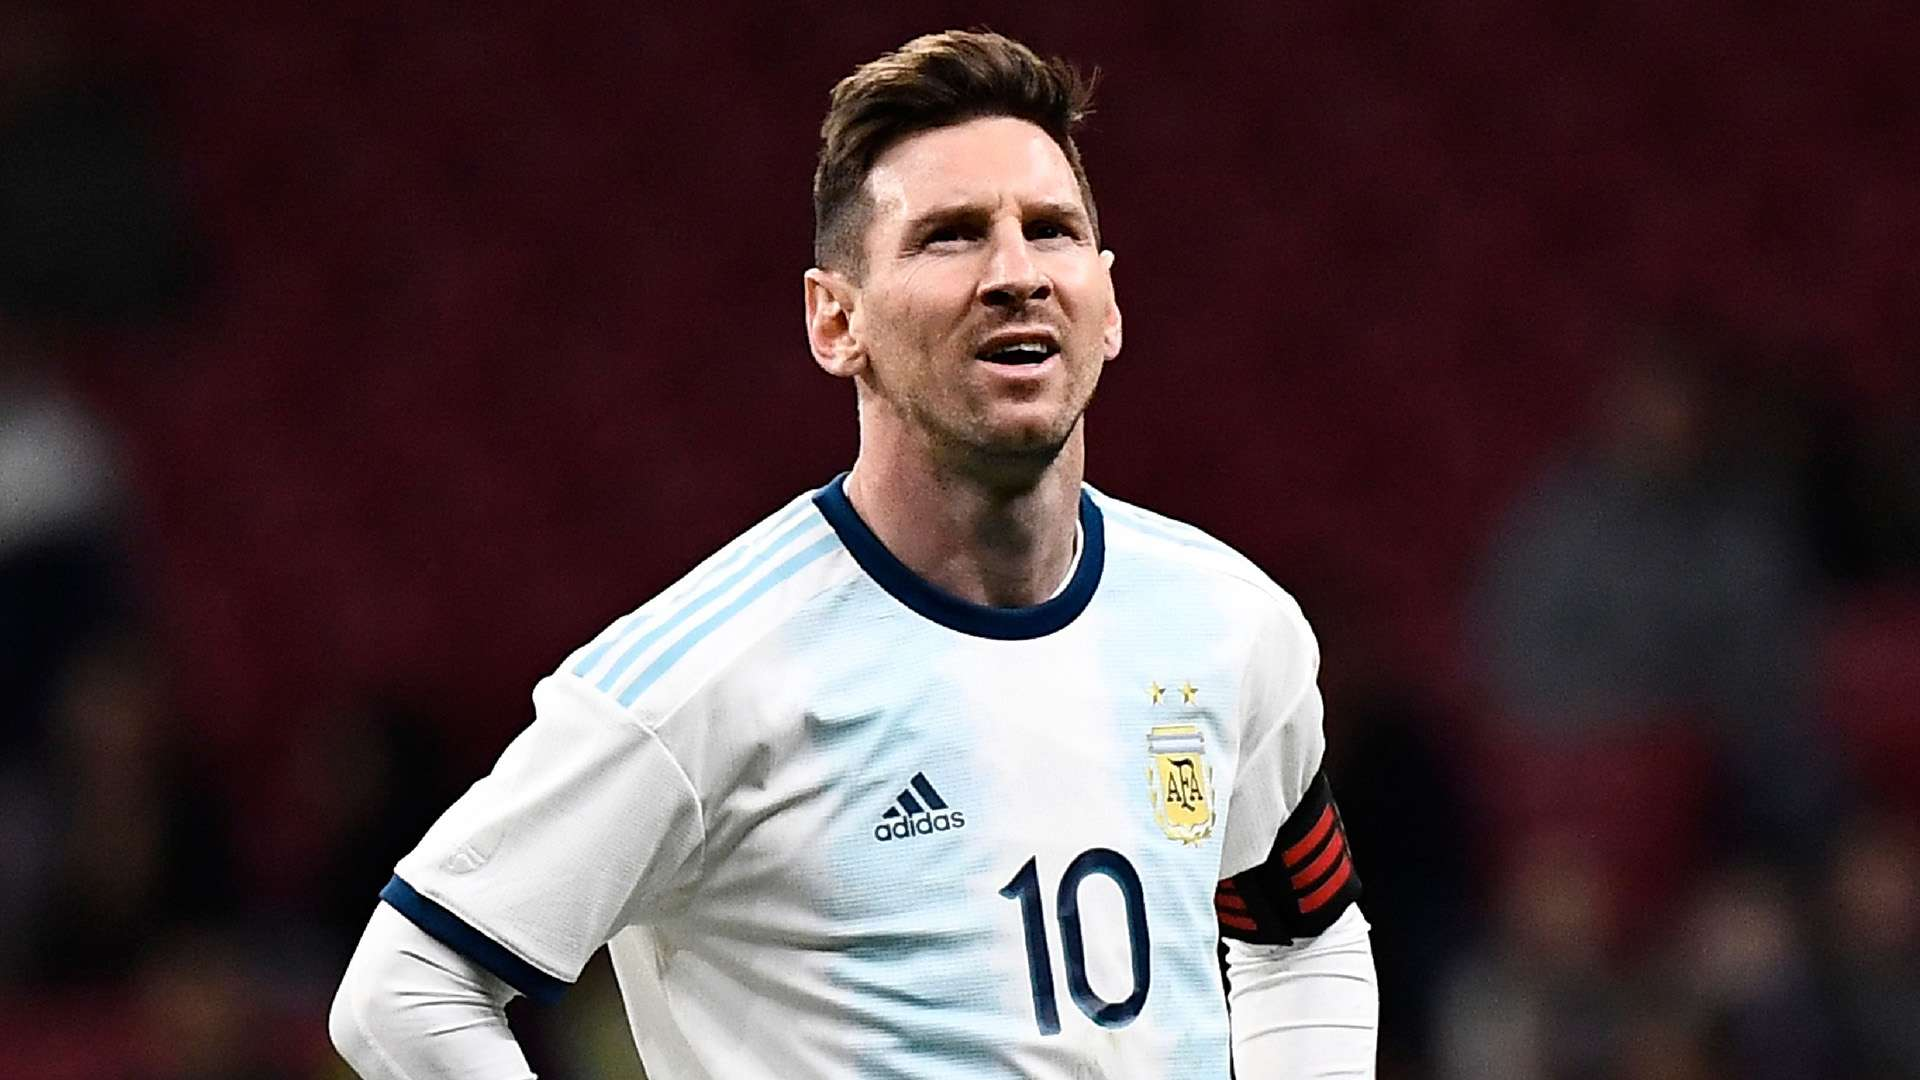 Messi Tops Forbes 100 Highest Paid Athletes List